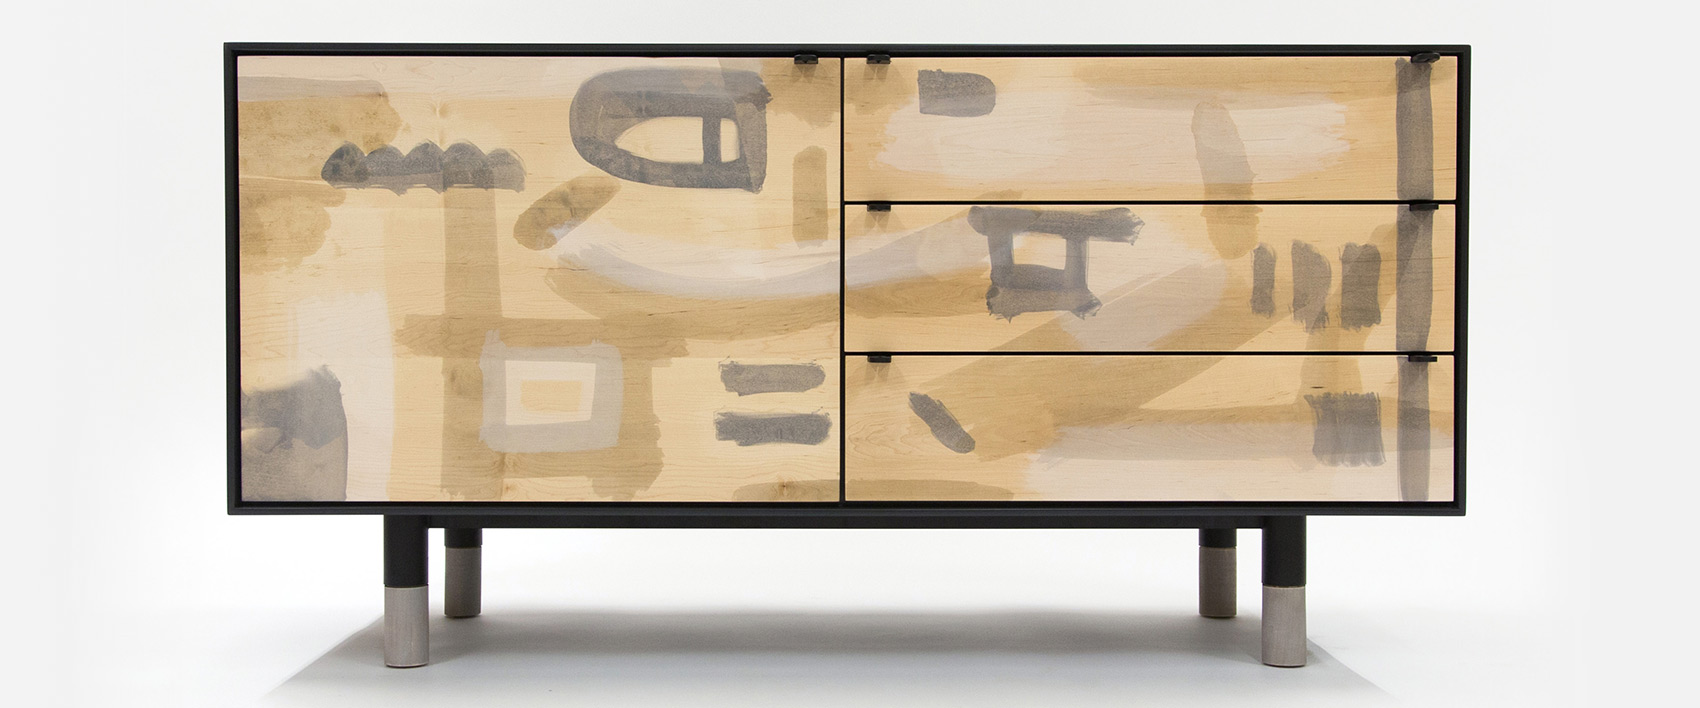 bespoke furniture make a statement with a hand-painted piece of furniture.  1_brisesdeprintemps_ninahelms HYEWGGP